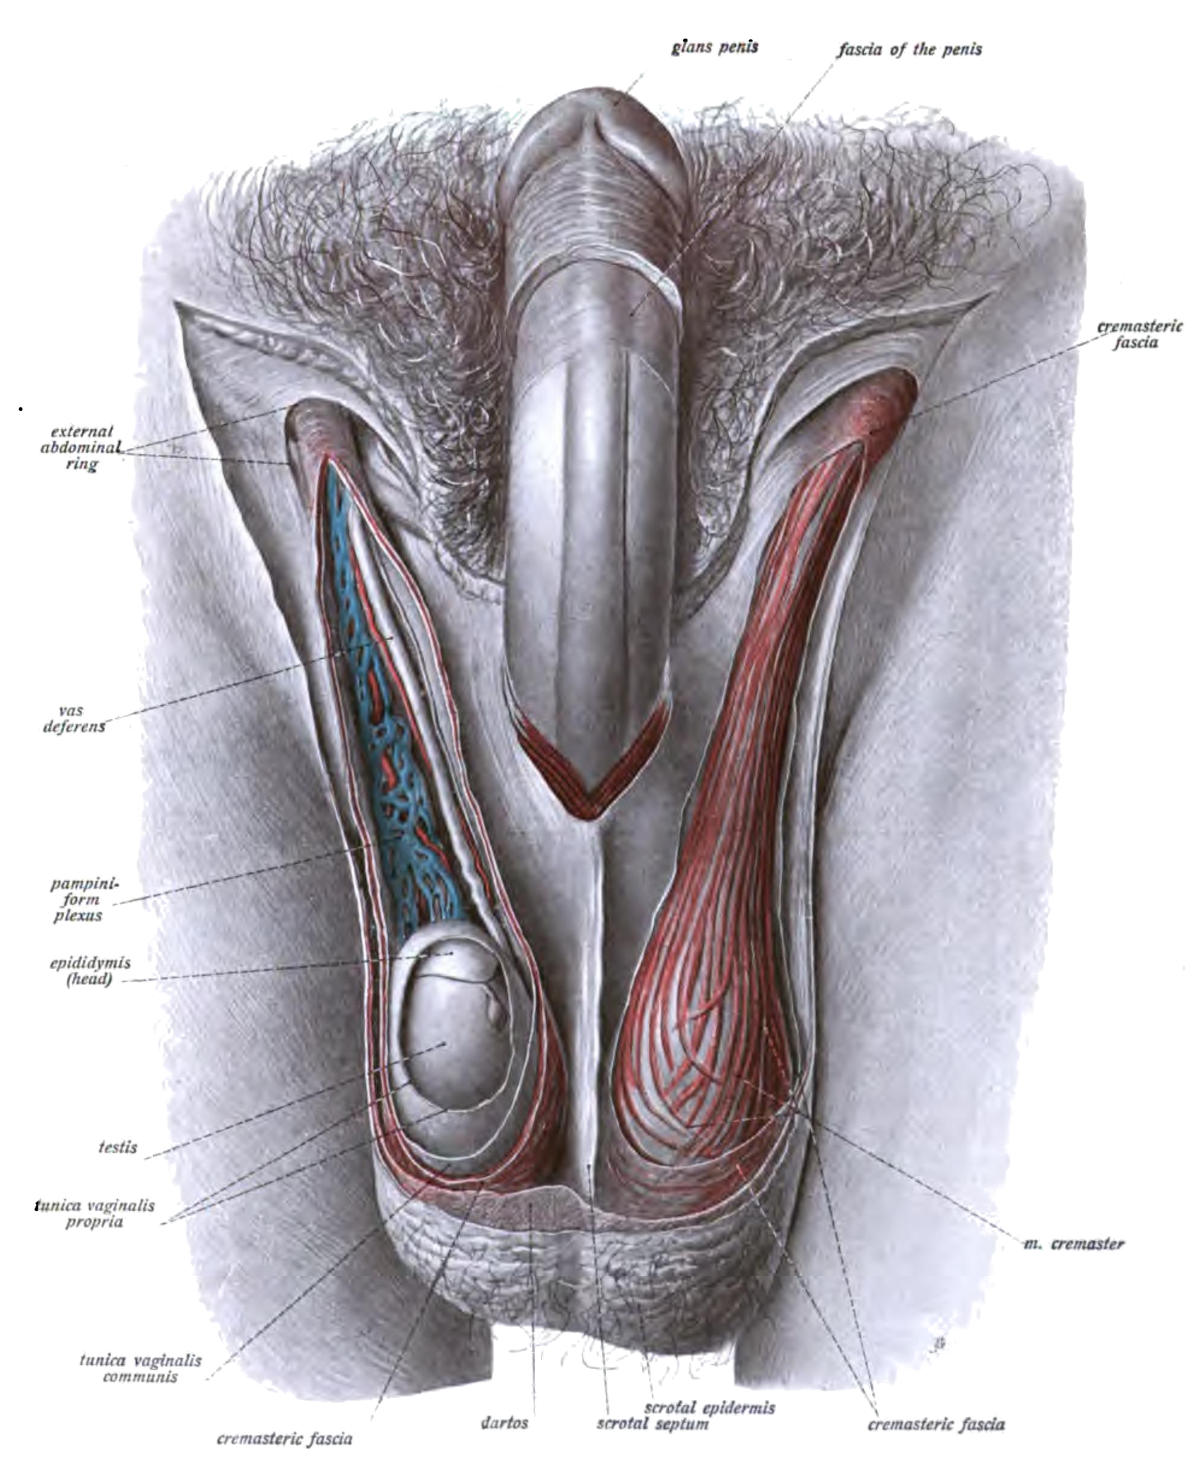 sex organs of the human male